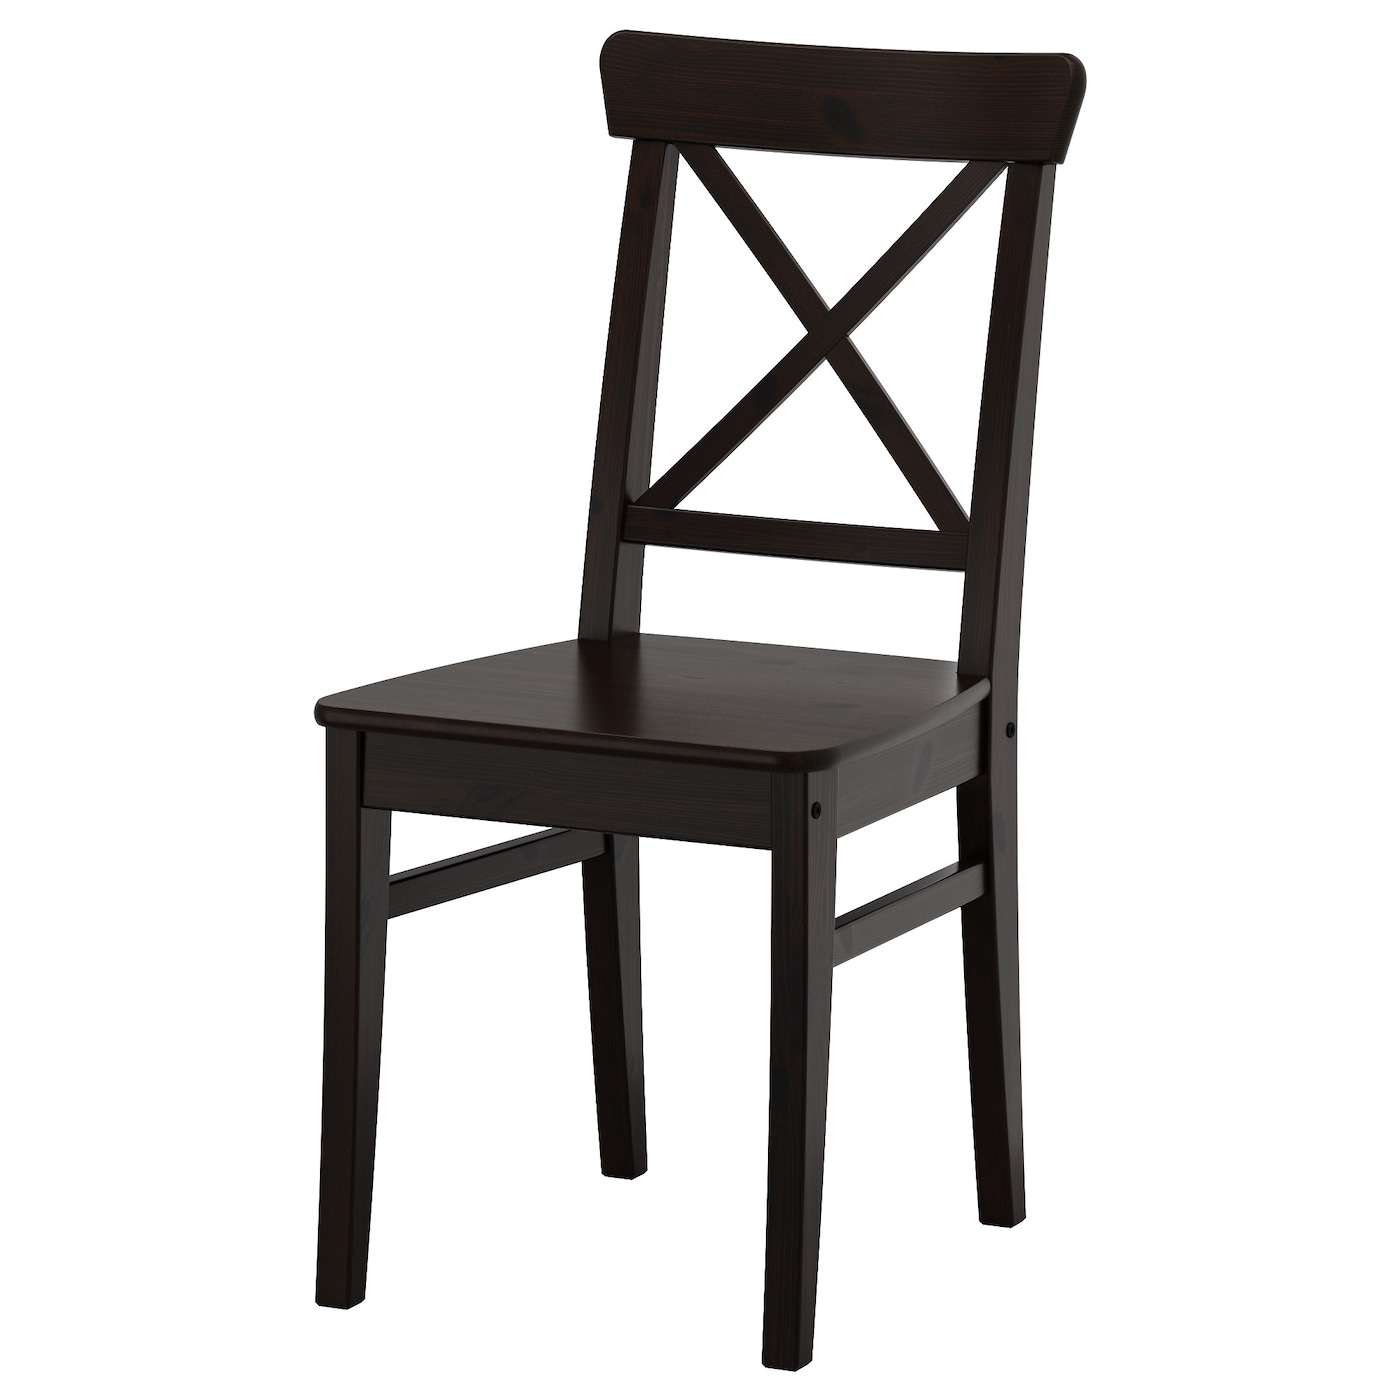 Ingolf chair brown black ikea for Chaise noire ikea